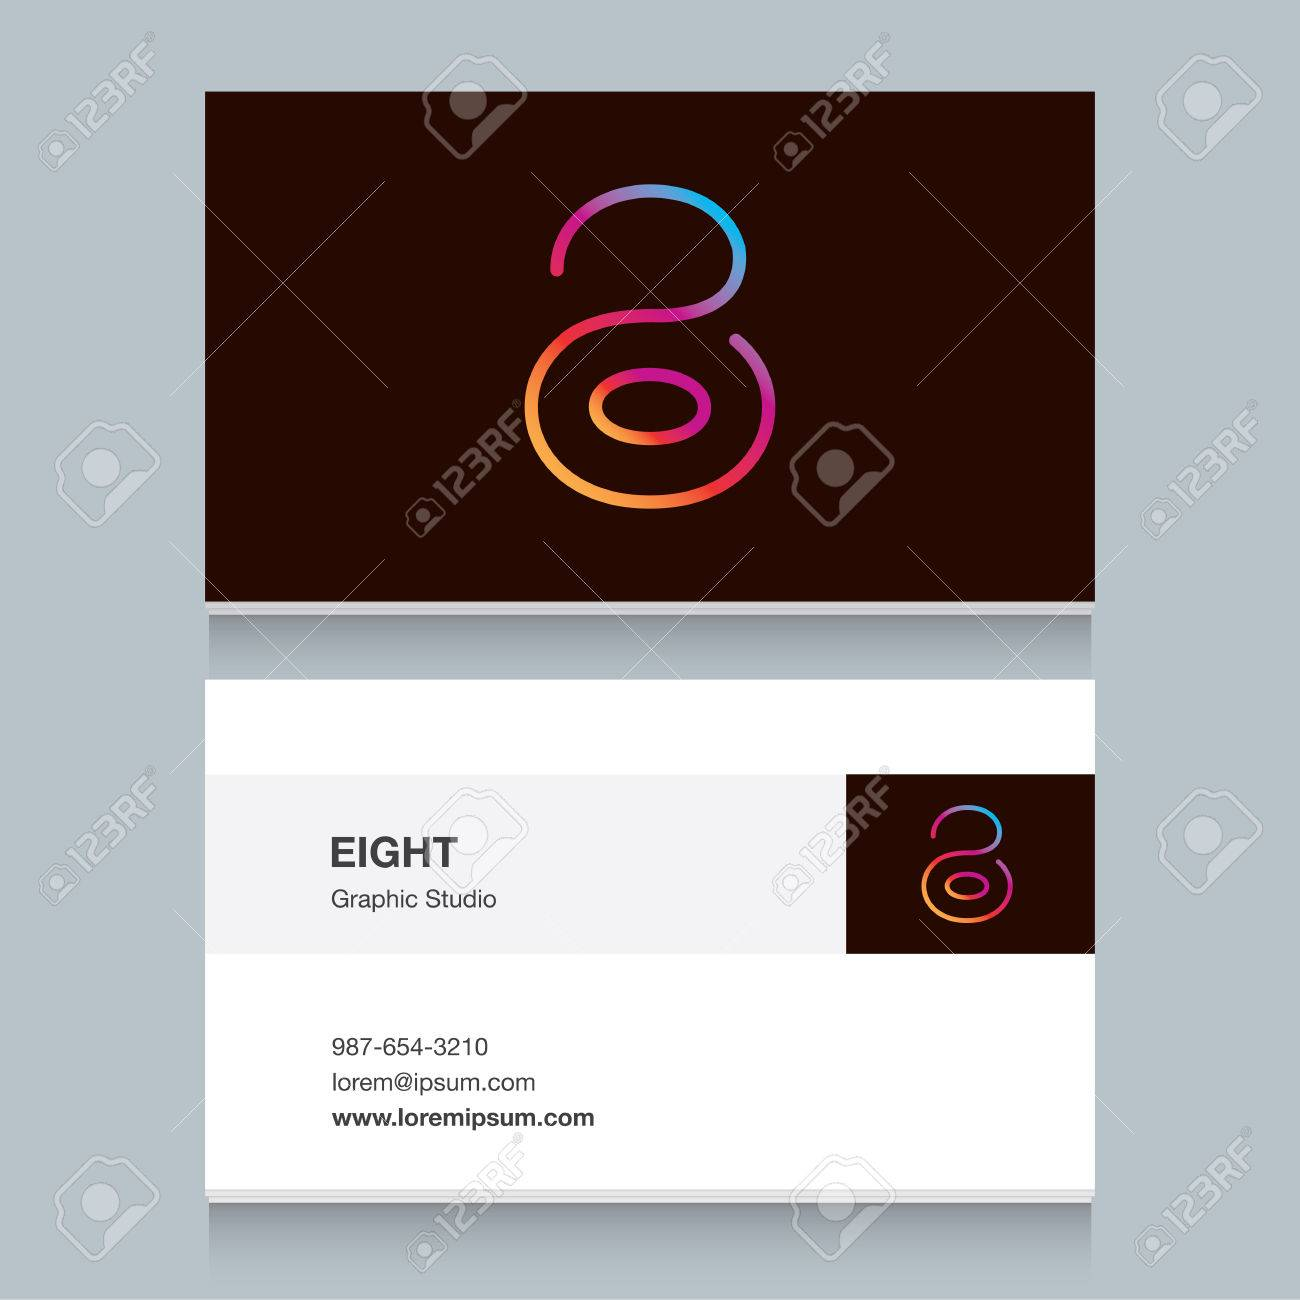 Logo number eight 8 with business card template vector design banco de imagens logo number eight 8 with business card template vector design fully editable reheart Choice Image